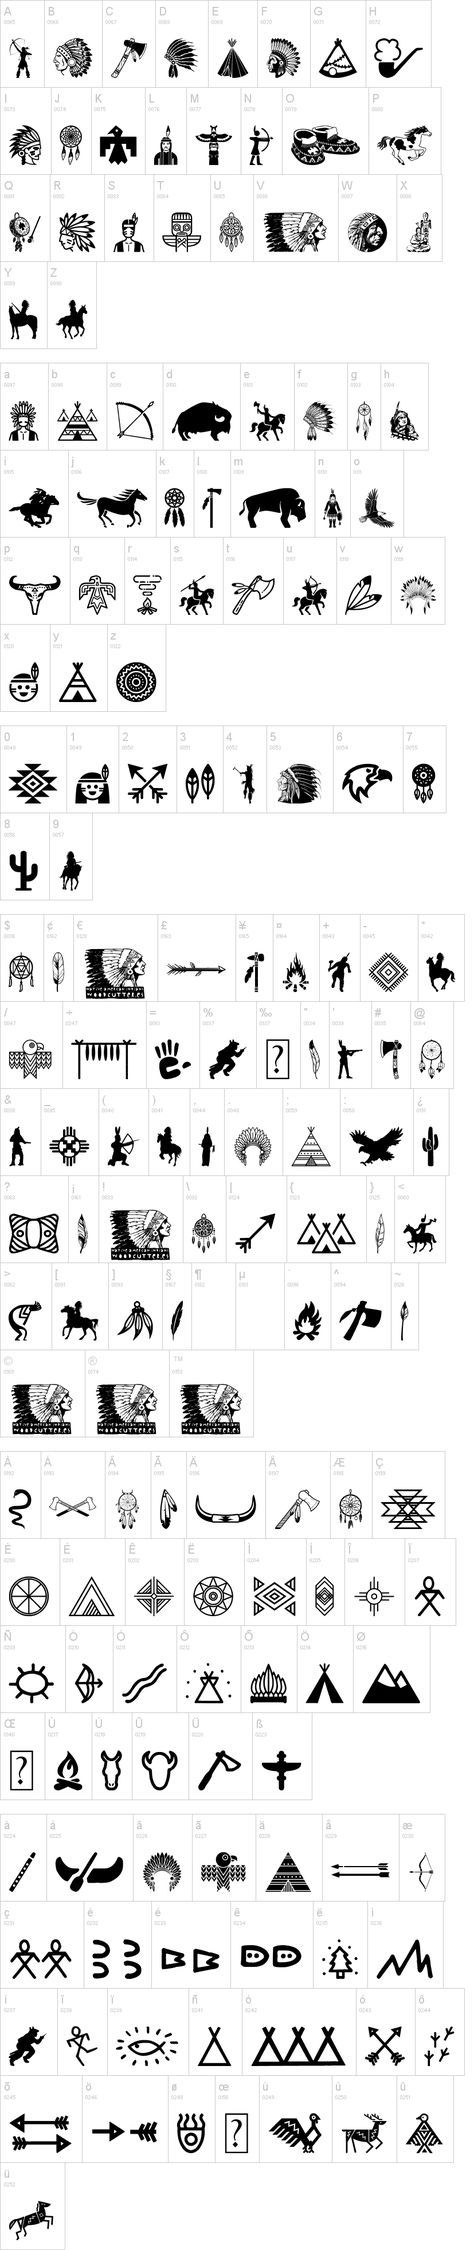 Ethnic american idigenous tribal amulets and symbols icons ethnic american idigenous tribal amulets and symbols icons collection with native feathers headdress abstract isolated vector illustration decor biocorpaavc Images